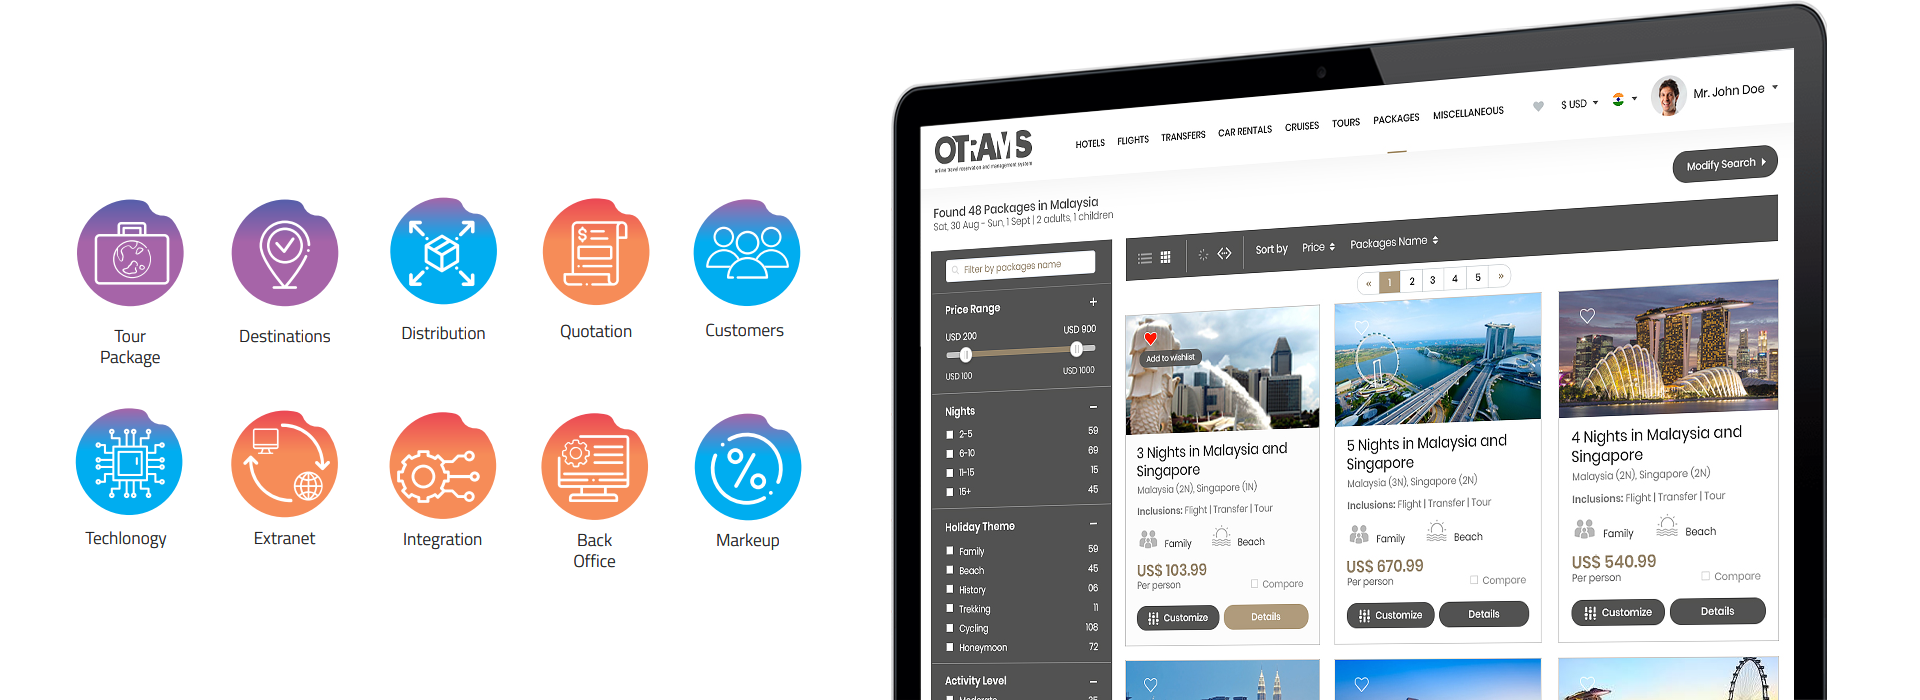 tour operator management software, Erp for tour operators